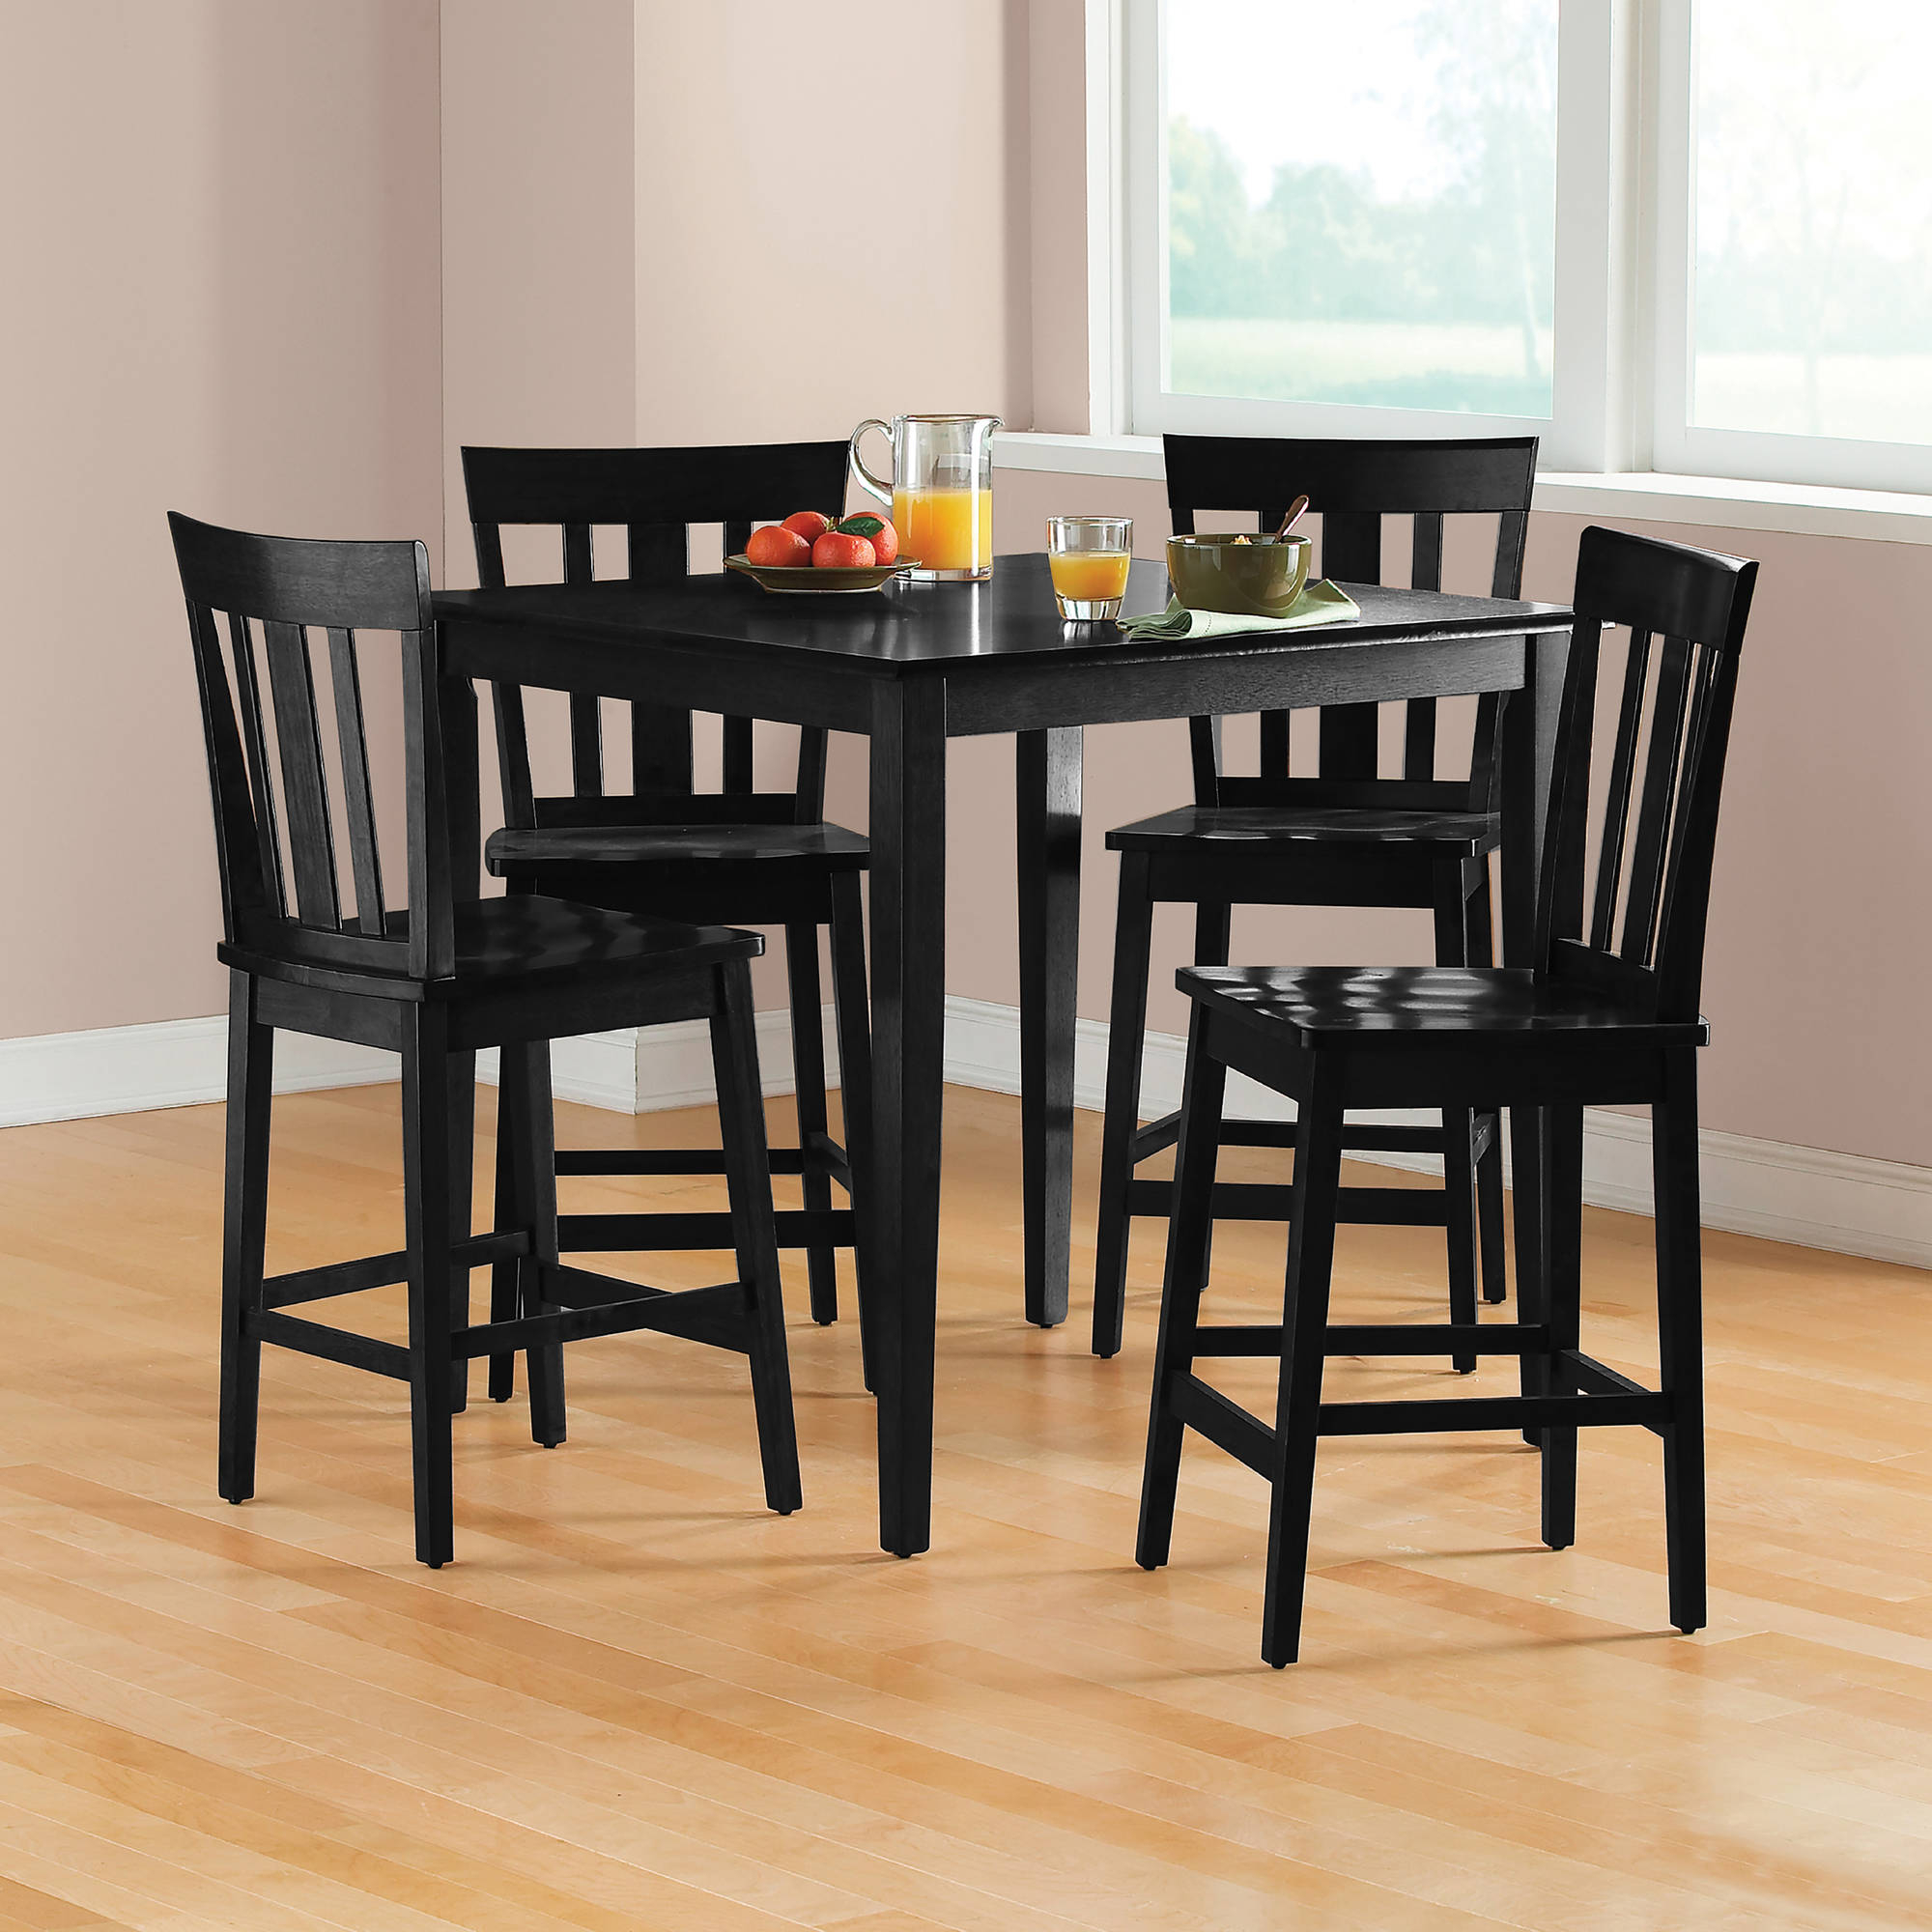 Mainstays 5 Piece Mission Counter Height Dining Set – Walmart With Regard To Fashionable Cargo 5 Piece Dining Sets (View 16 of 25)